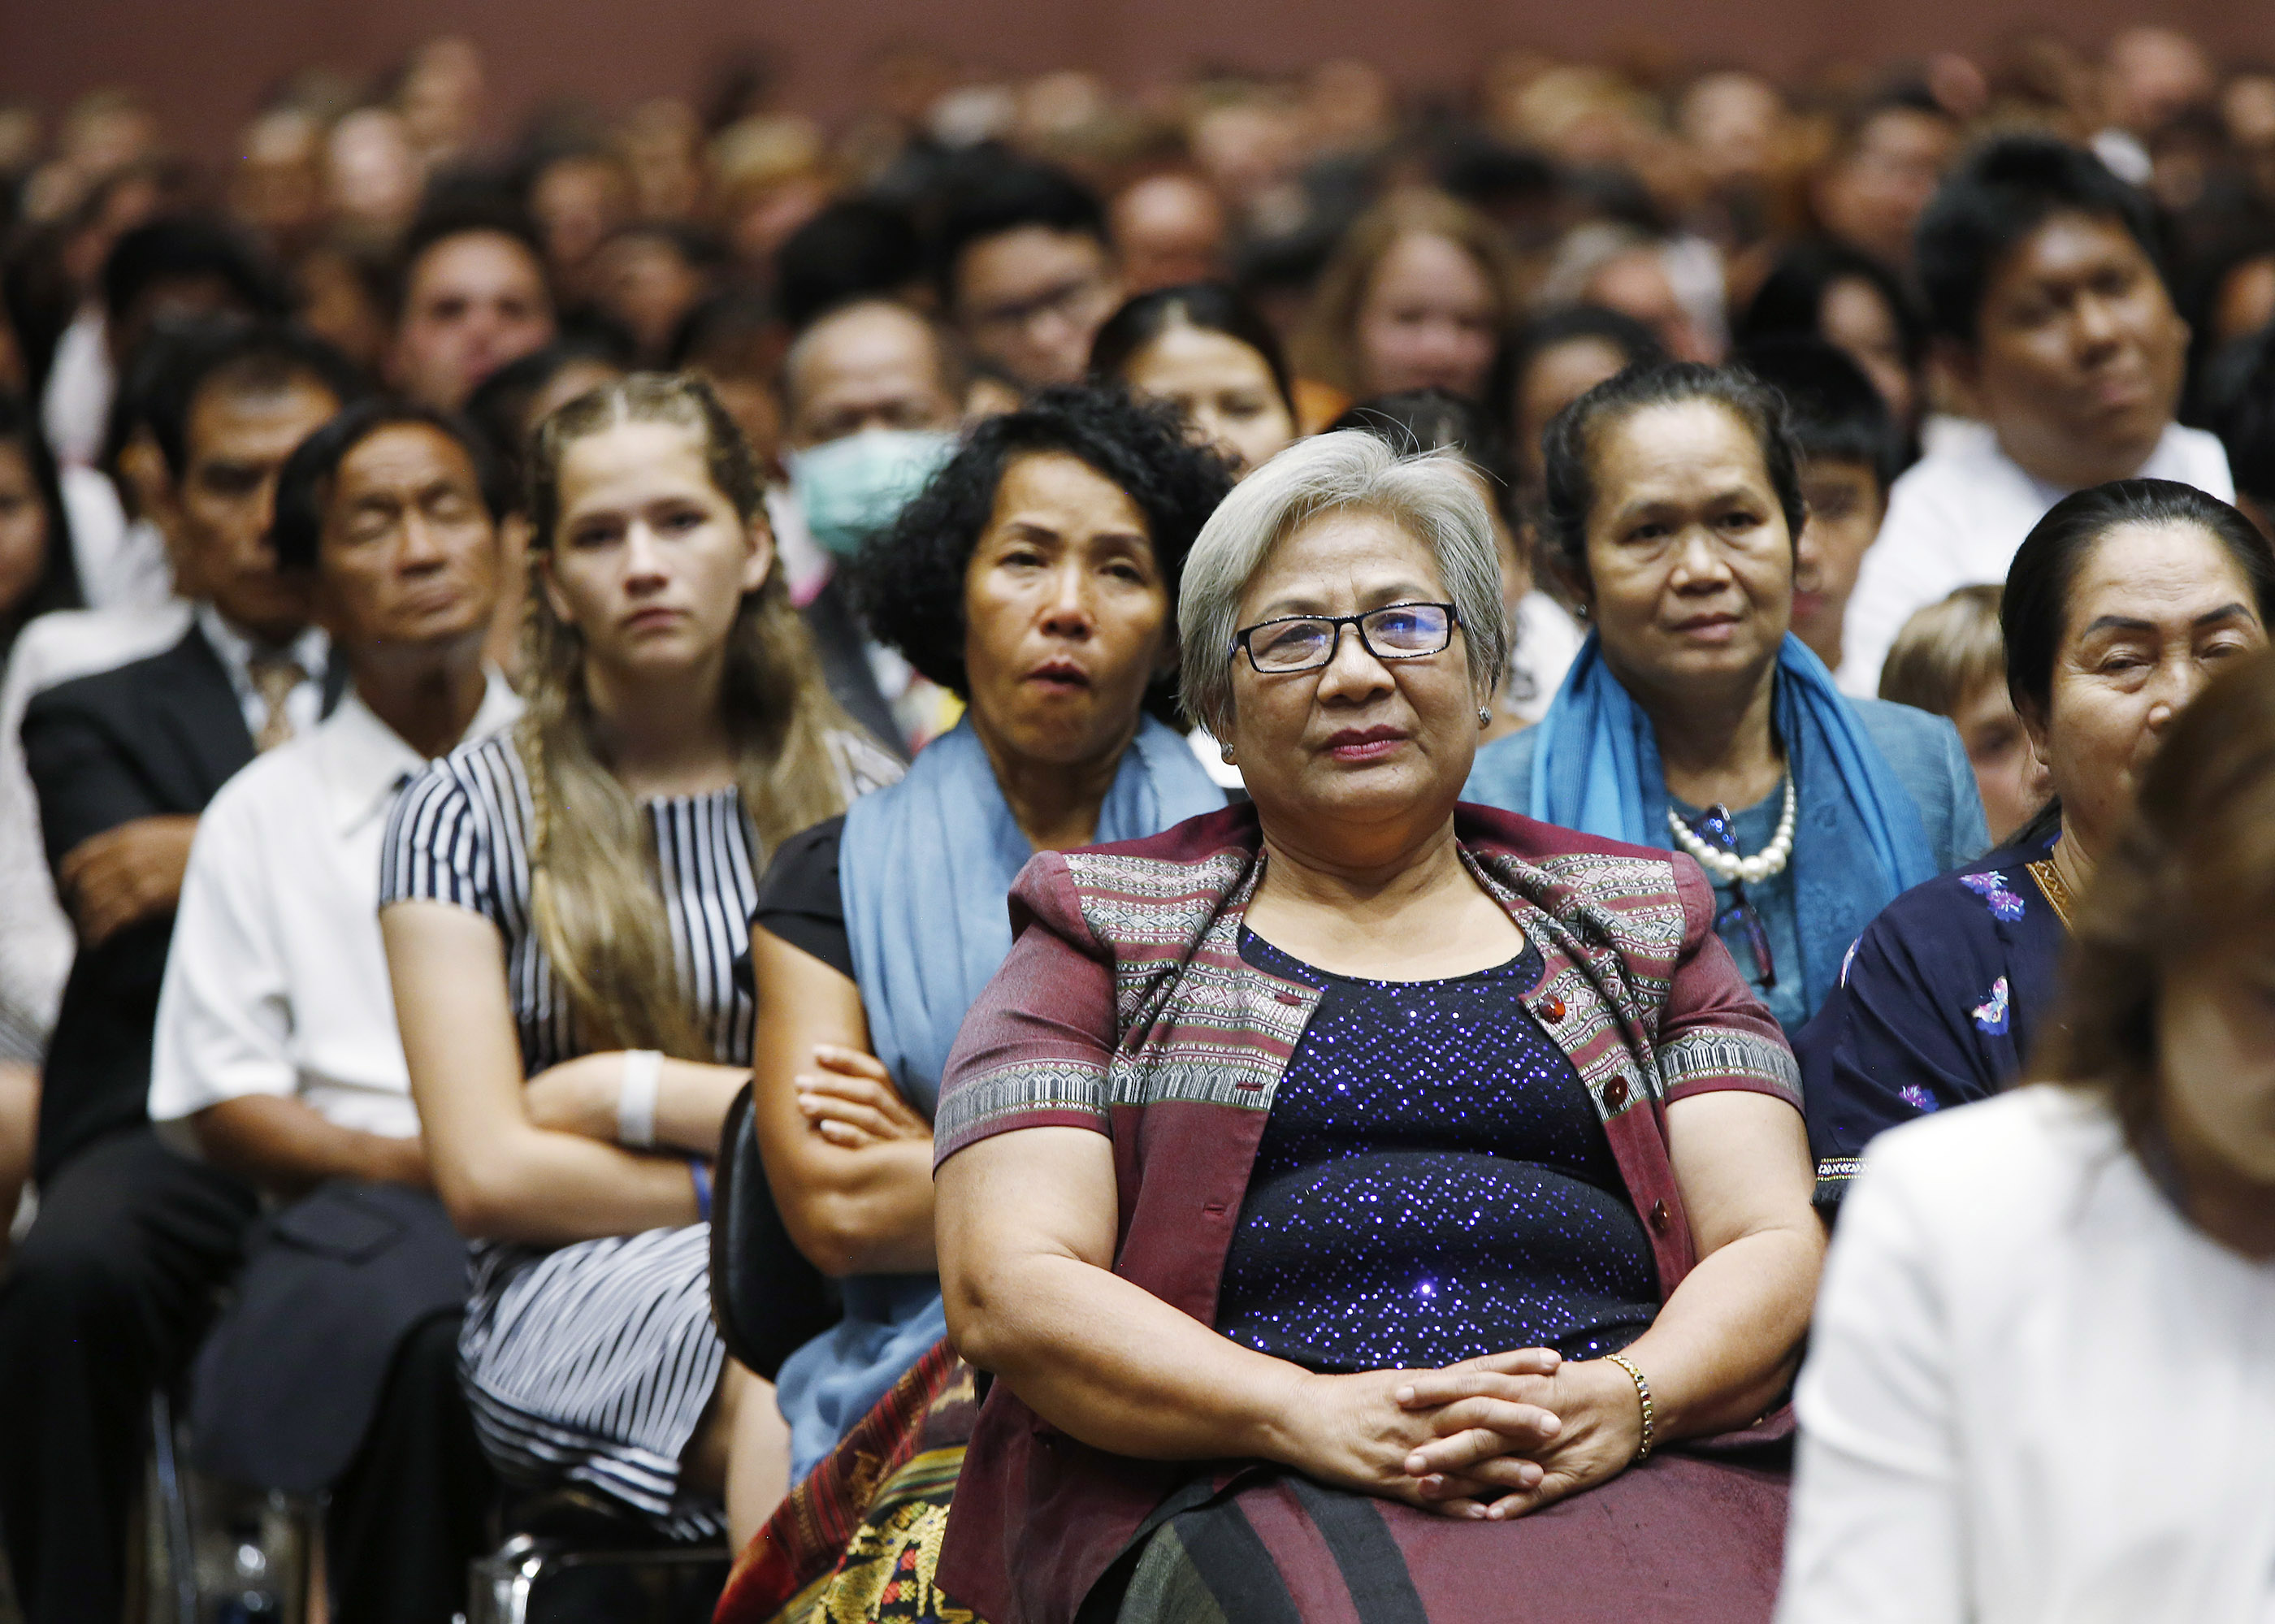 Attendees listen during a devotional with Russell M. Nelson, President of The Church of Jesus Christ of Latter-day Saints, in Bangkok, Thailand, on Friday, April 20, 2018.